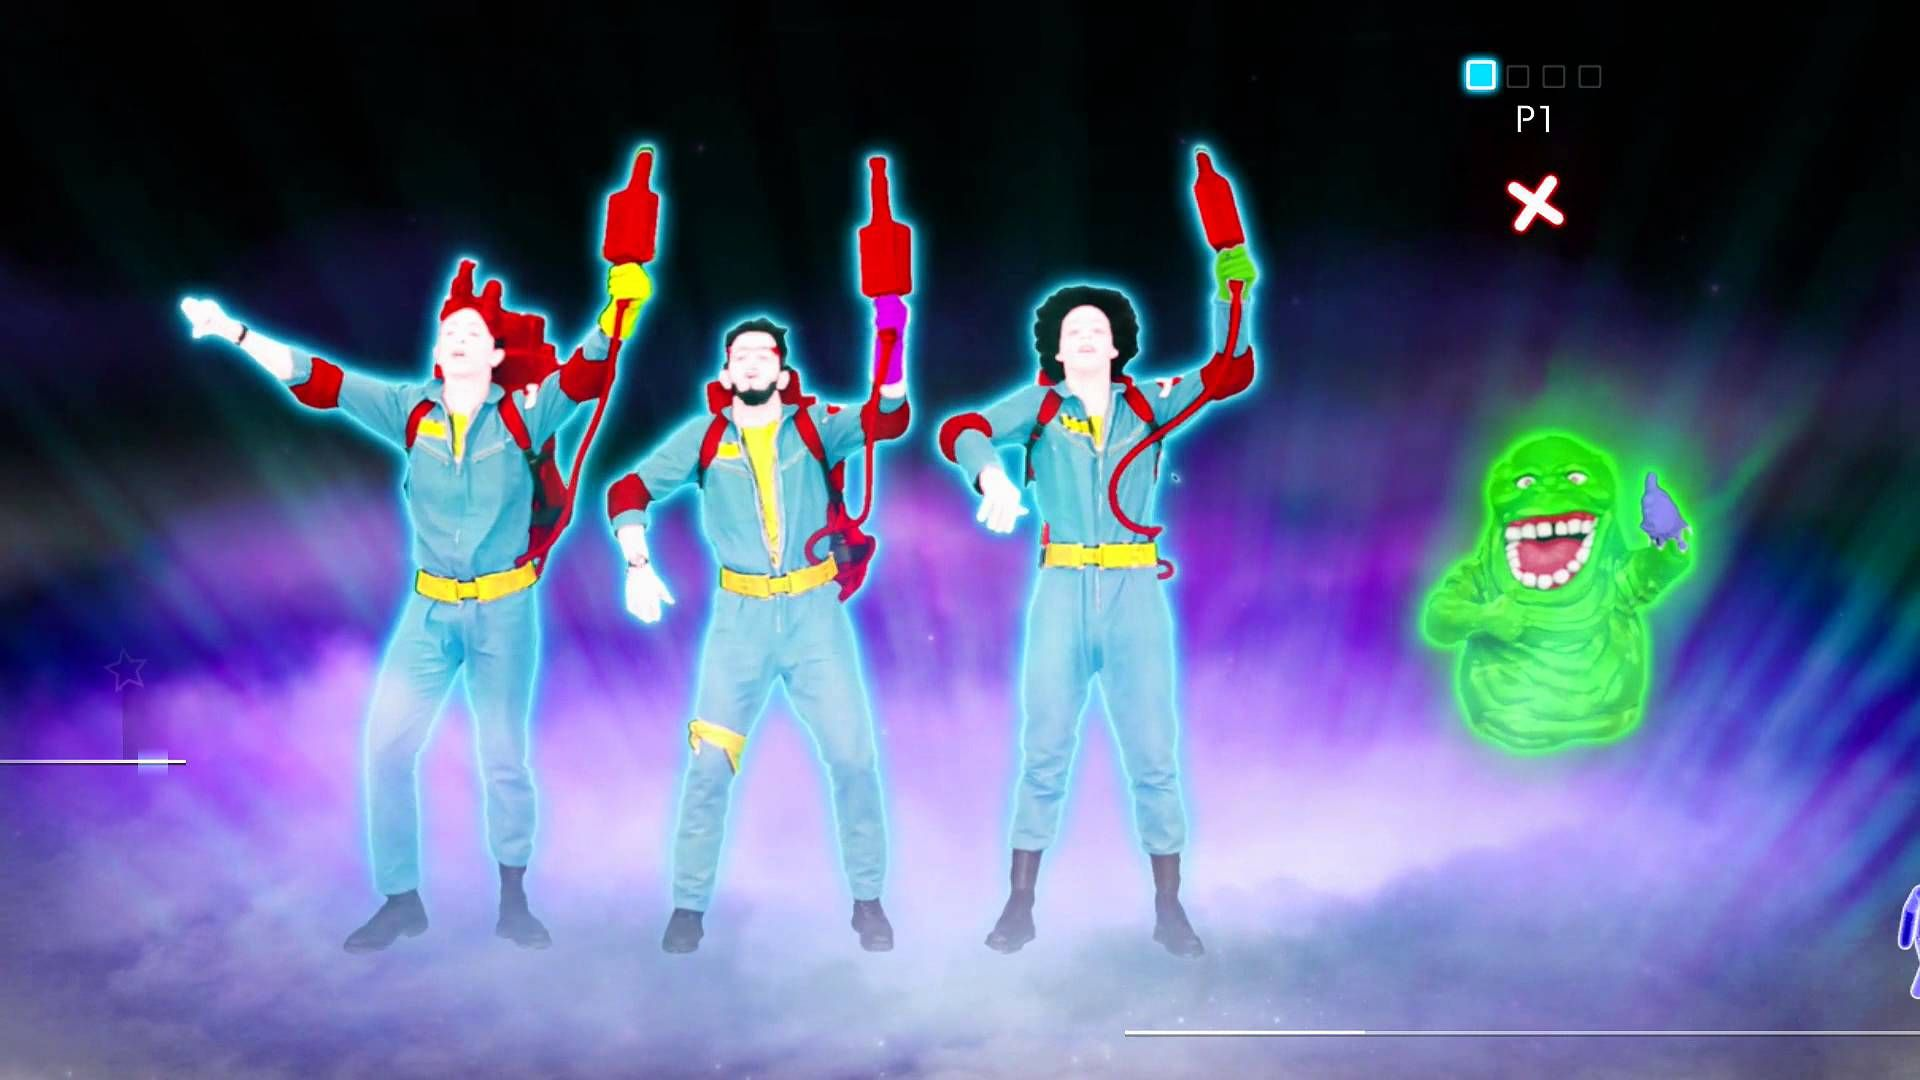 Full Choreography Of Ghostbusters By Ray Parker Jr In Just